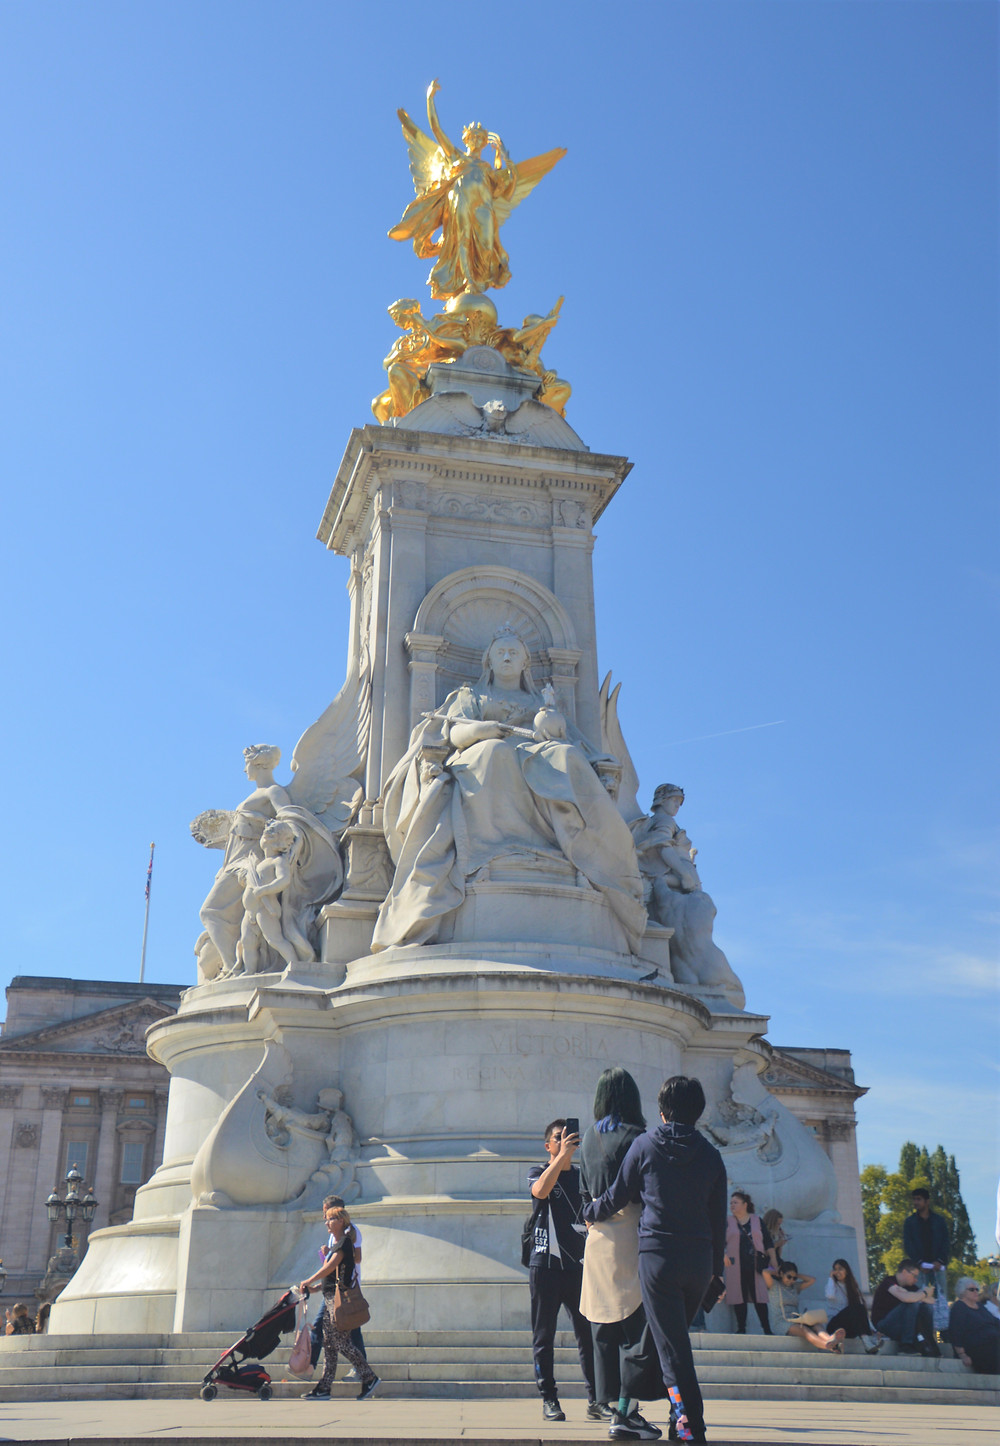 Gilded bronze Winged Victory statue on top of the Victoria Memorial in London completed 1924